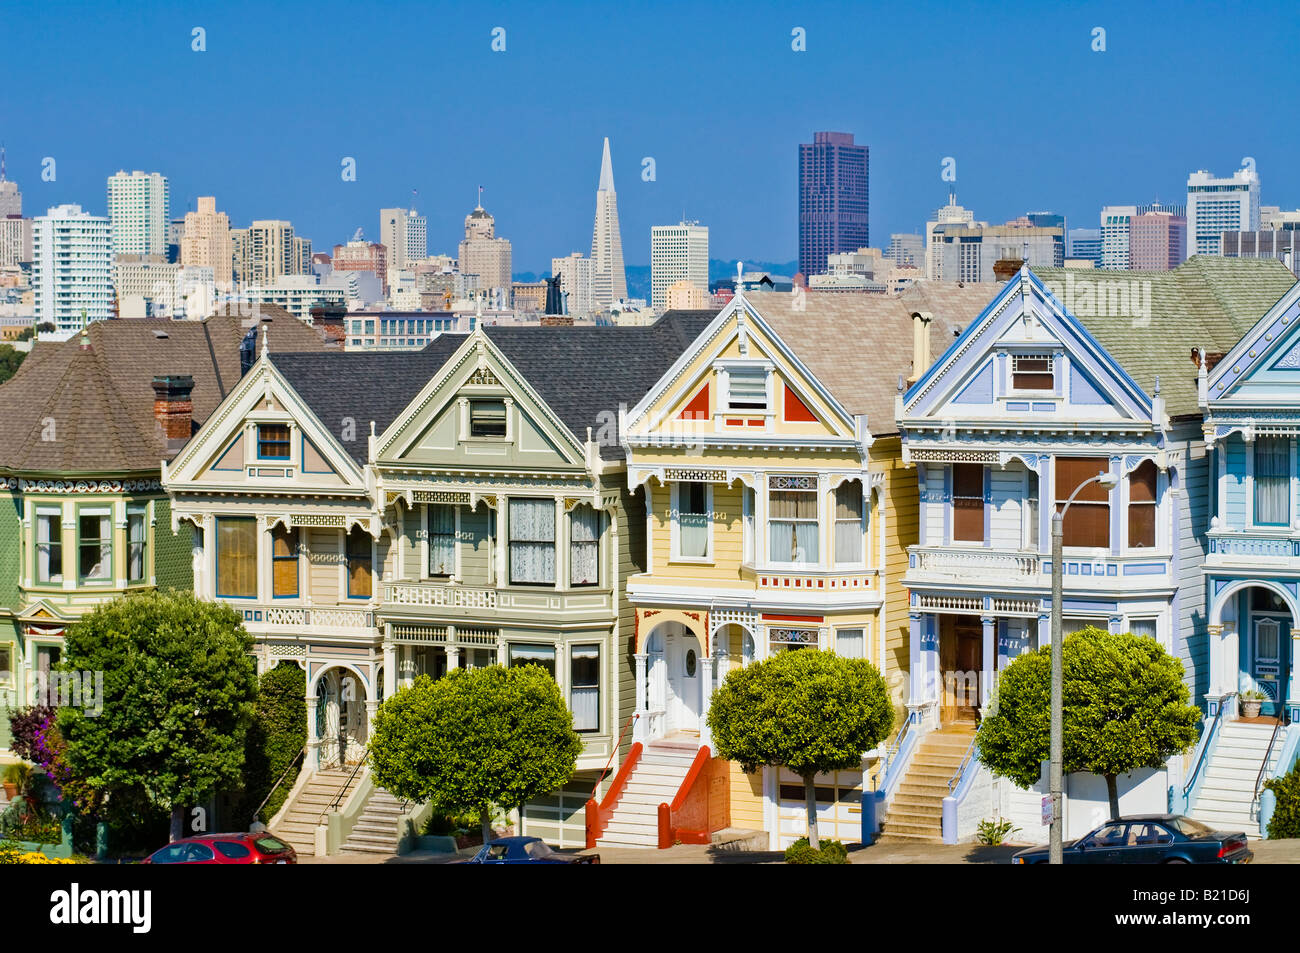 San Francisco, California. The 'Painted Ladies' victorian houses at 'Alamo Square' with the San - Stock Image